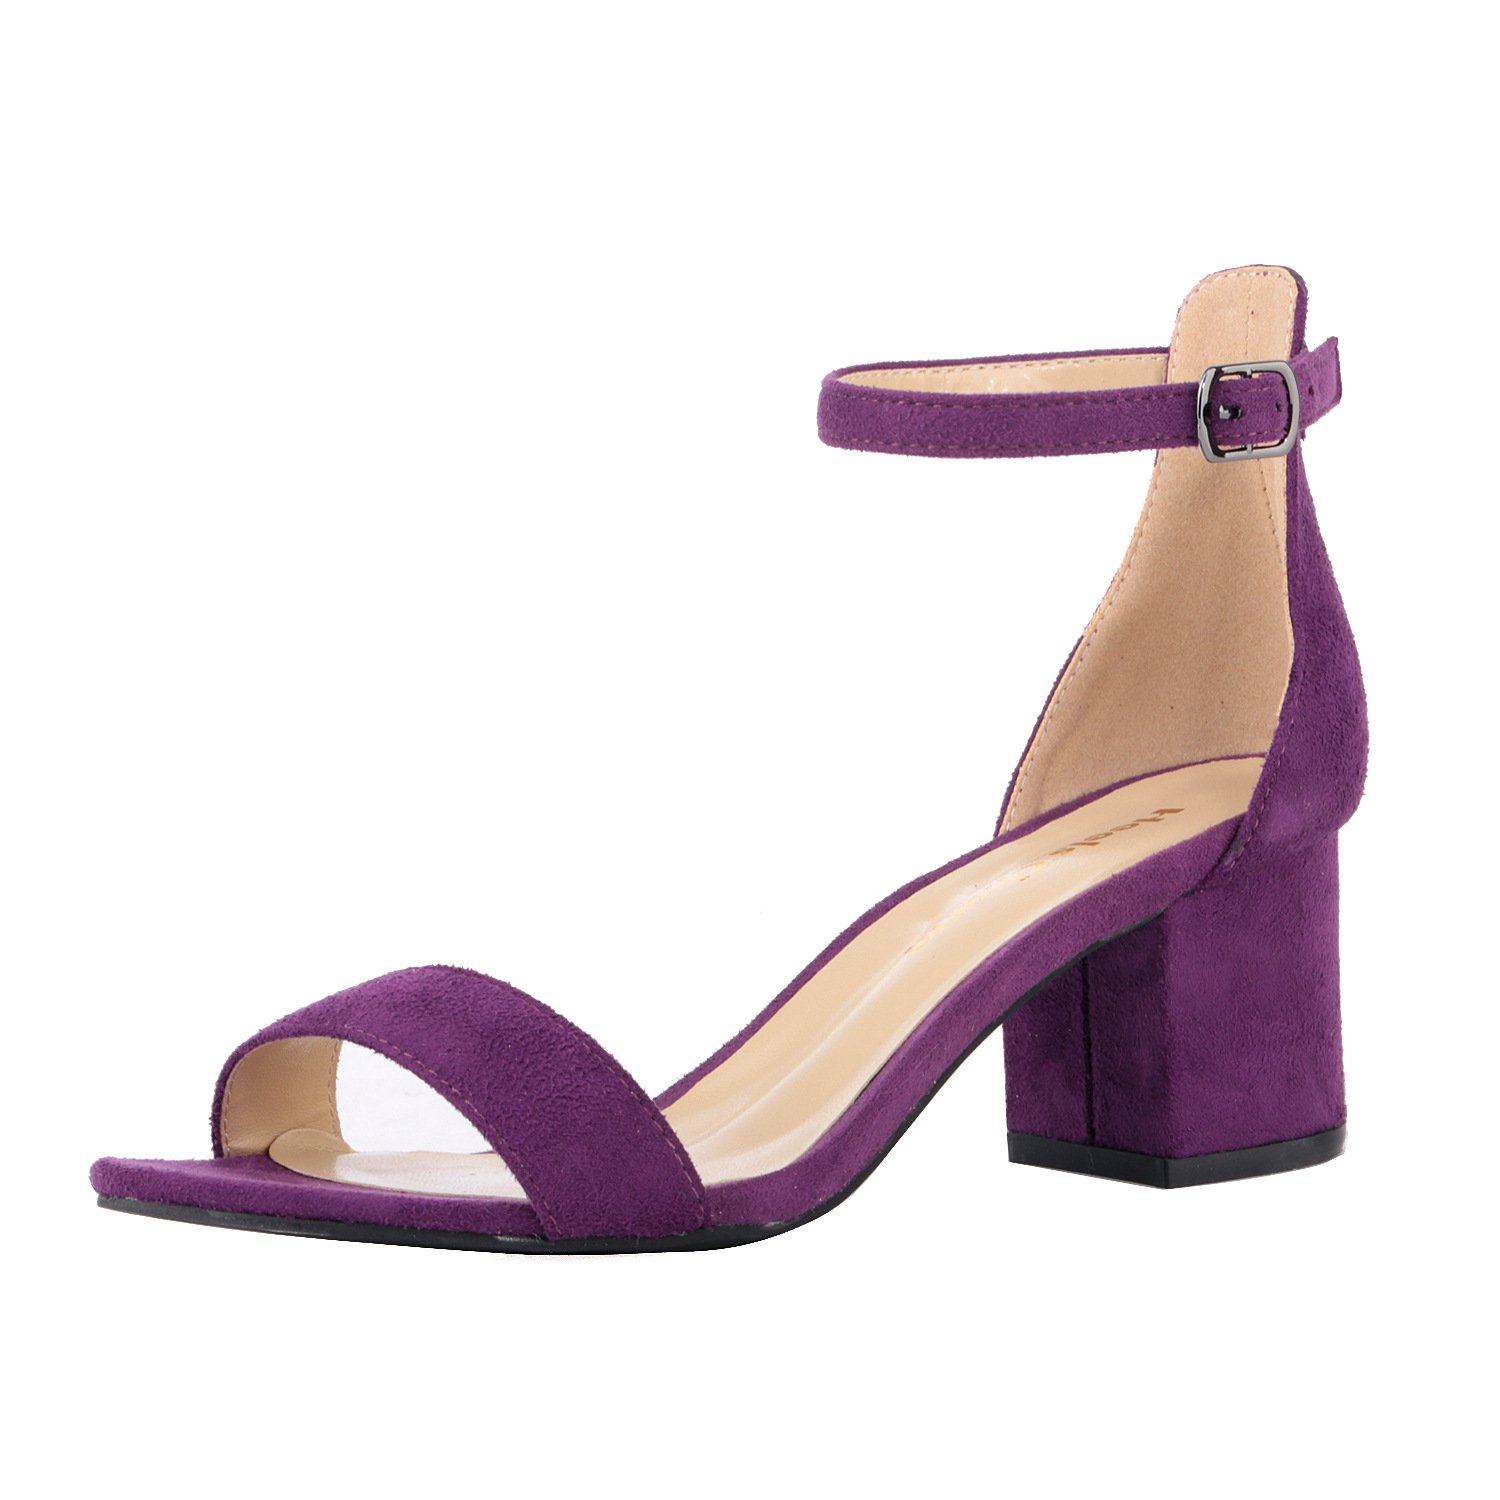 Velvet Purple Women's Strappy Chunky Block Low Heeled Sandals 2 Inch Open Toe Ankle Strap High Heel Dress Sandals Daily Work Party shoes